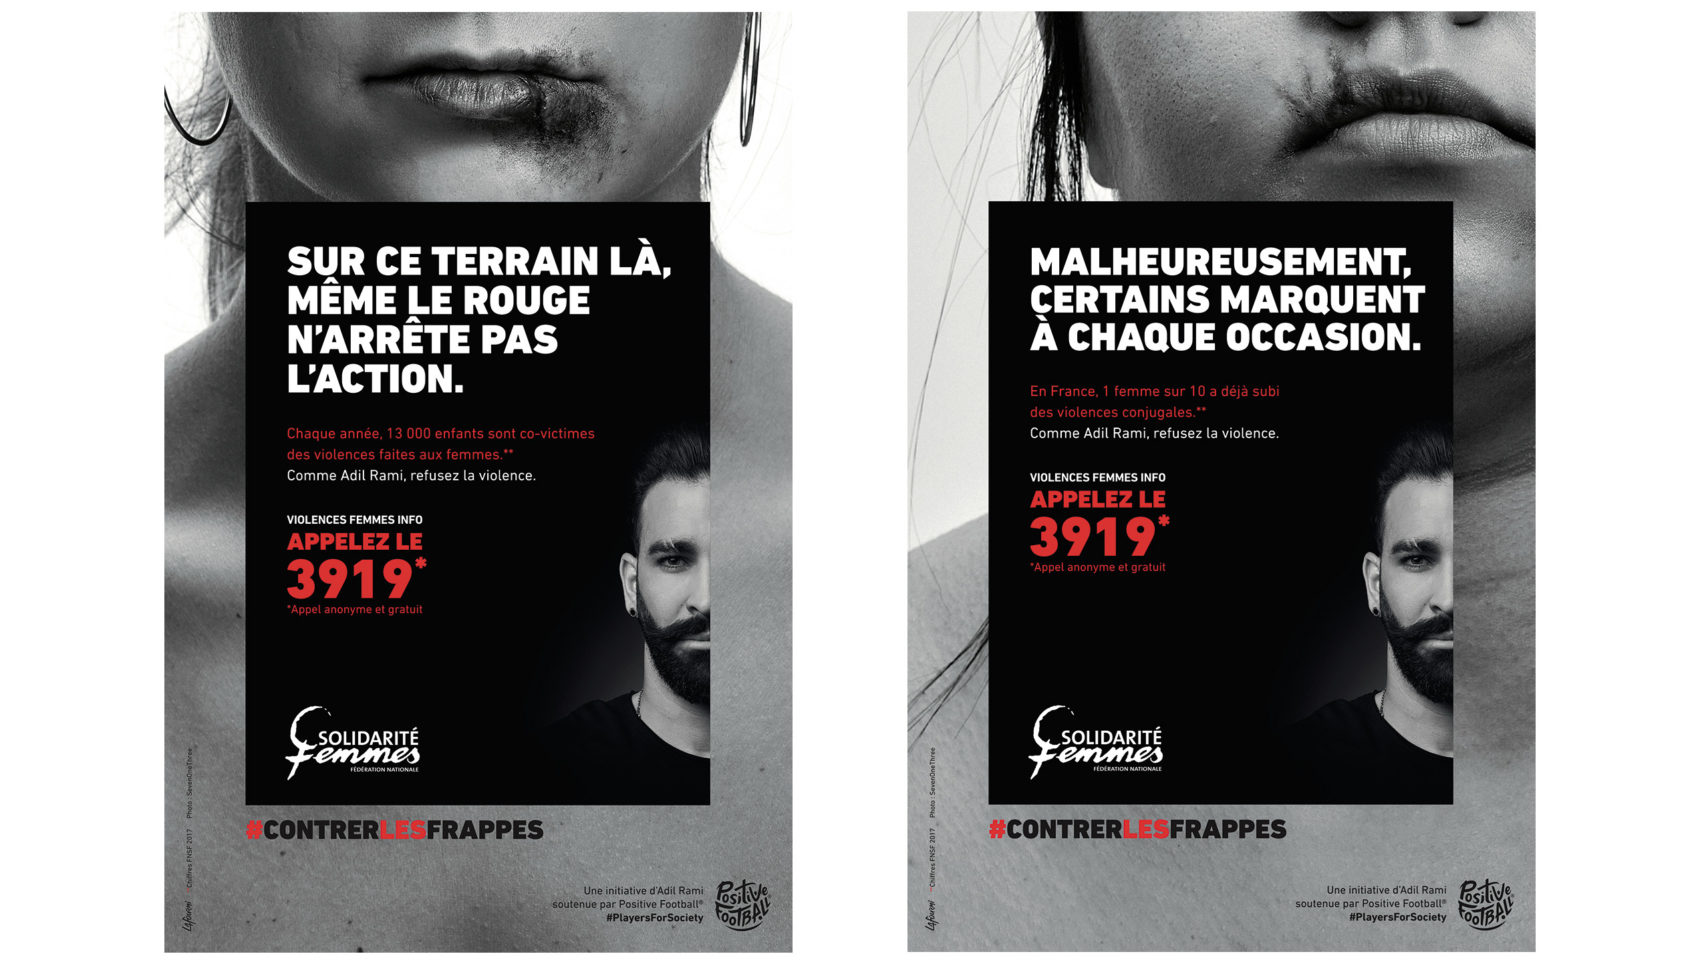 Projet_Positive_Football_Campagne_campaign_Violences_Adil_Rami_#CONTRERLESFRAPPES_